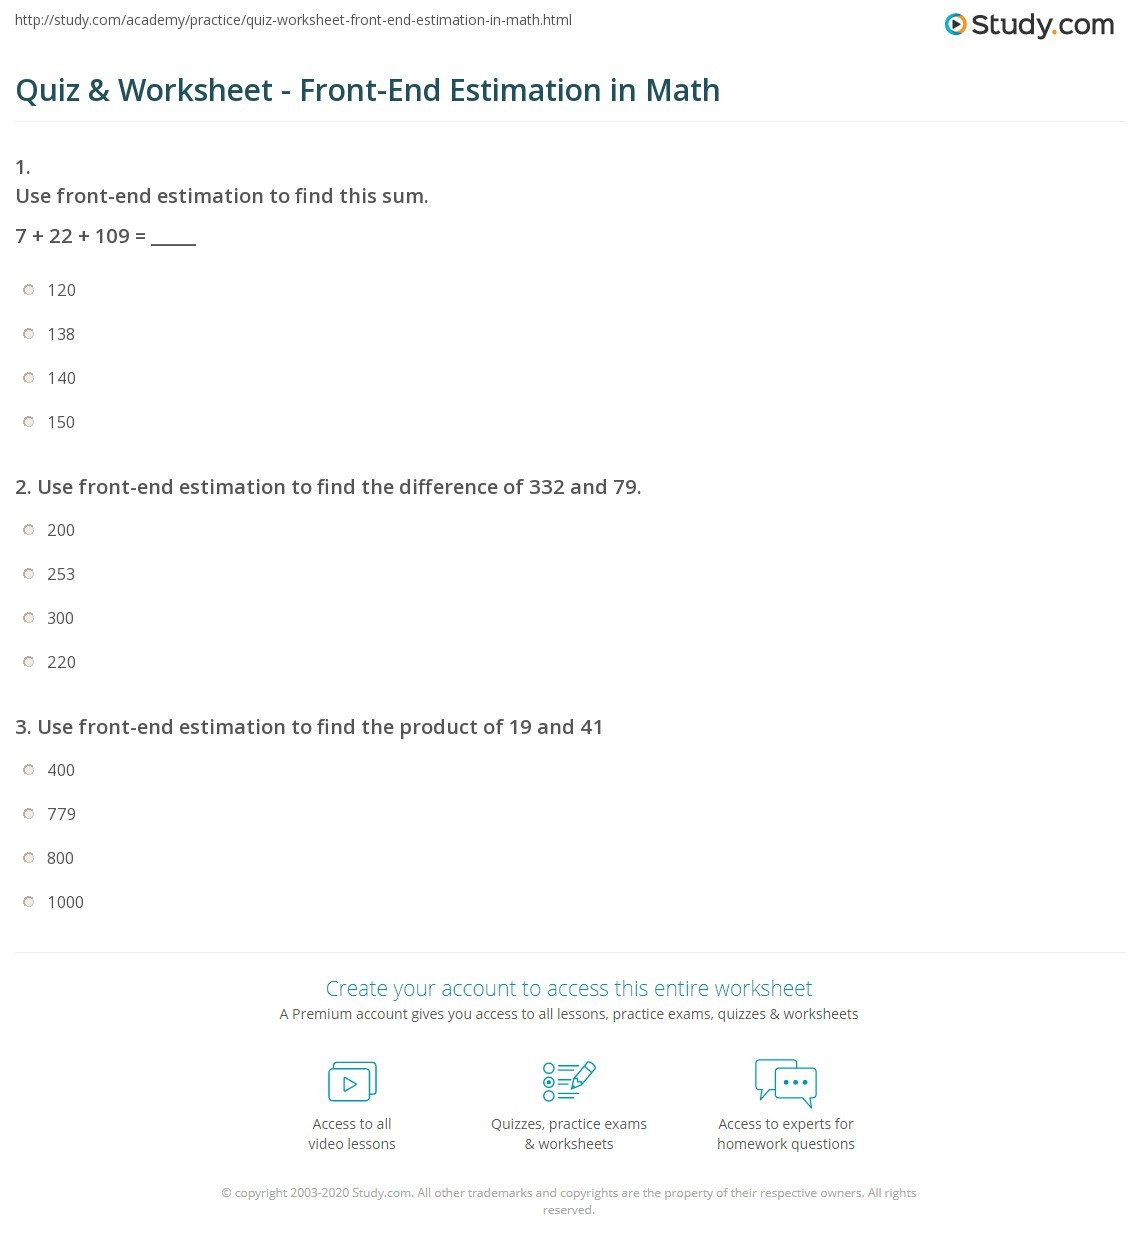 Estimation Maths Worksheets Quiz & Worksheet Front End Estimation In Math